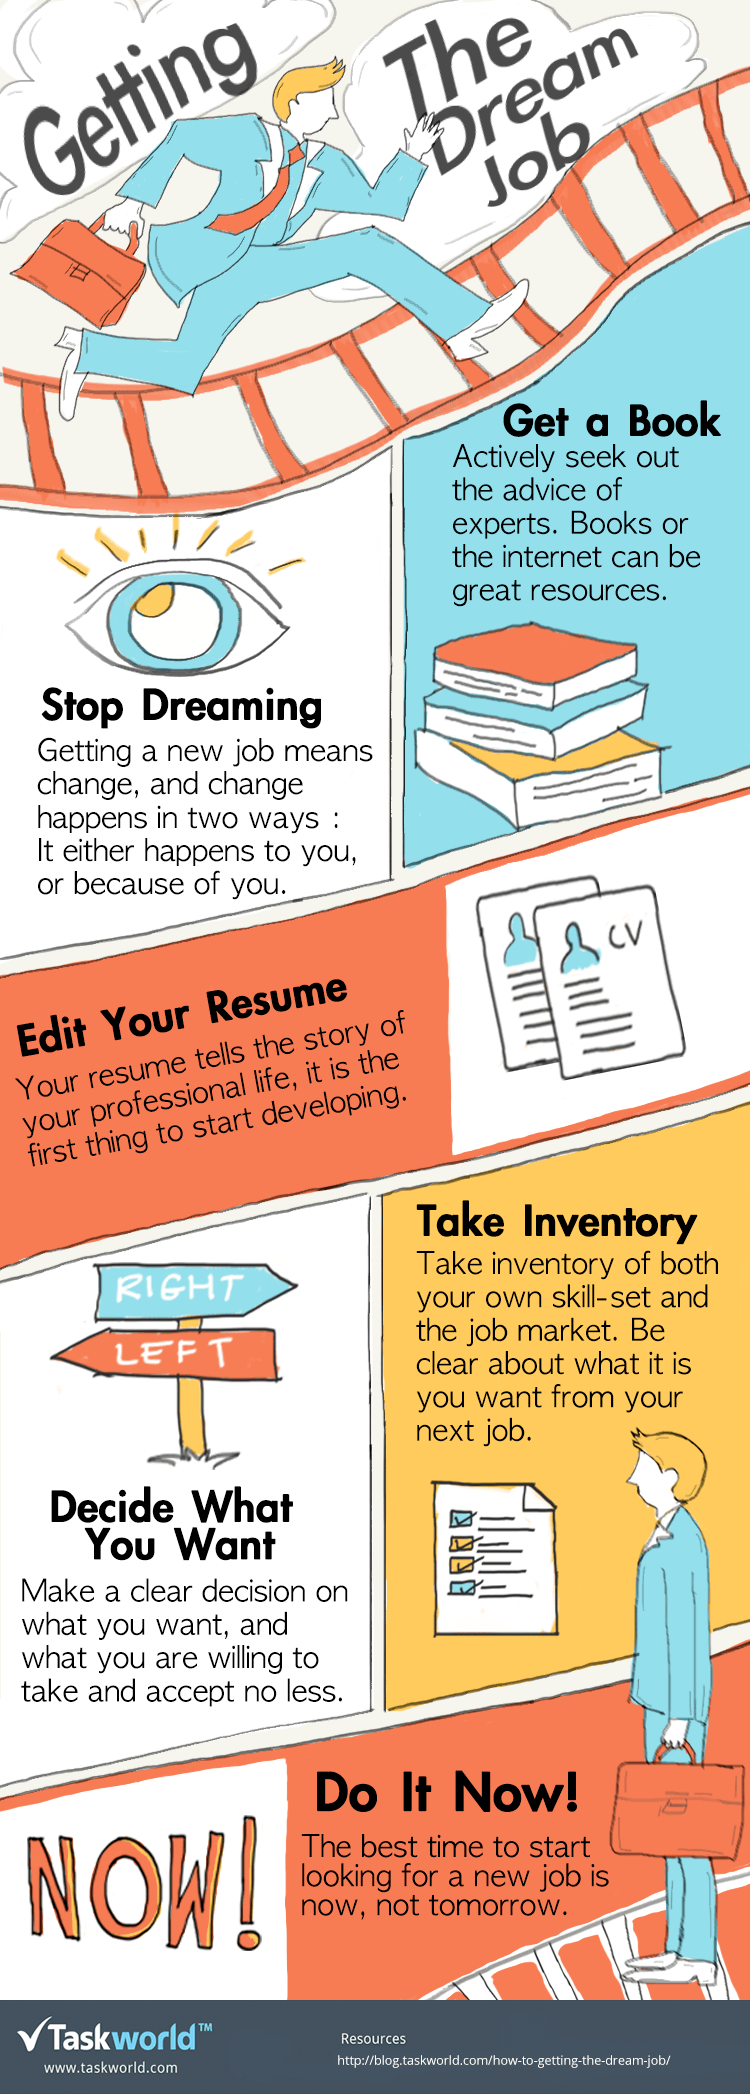 getting the dream job infographic e learning infographics getting the dream job infographic